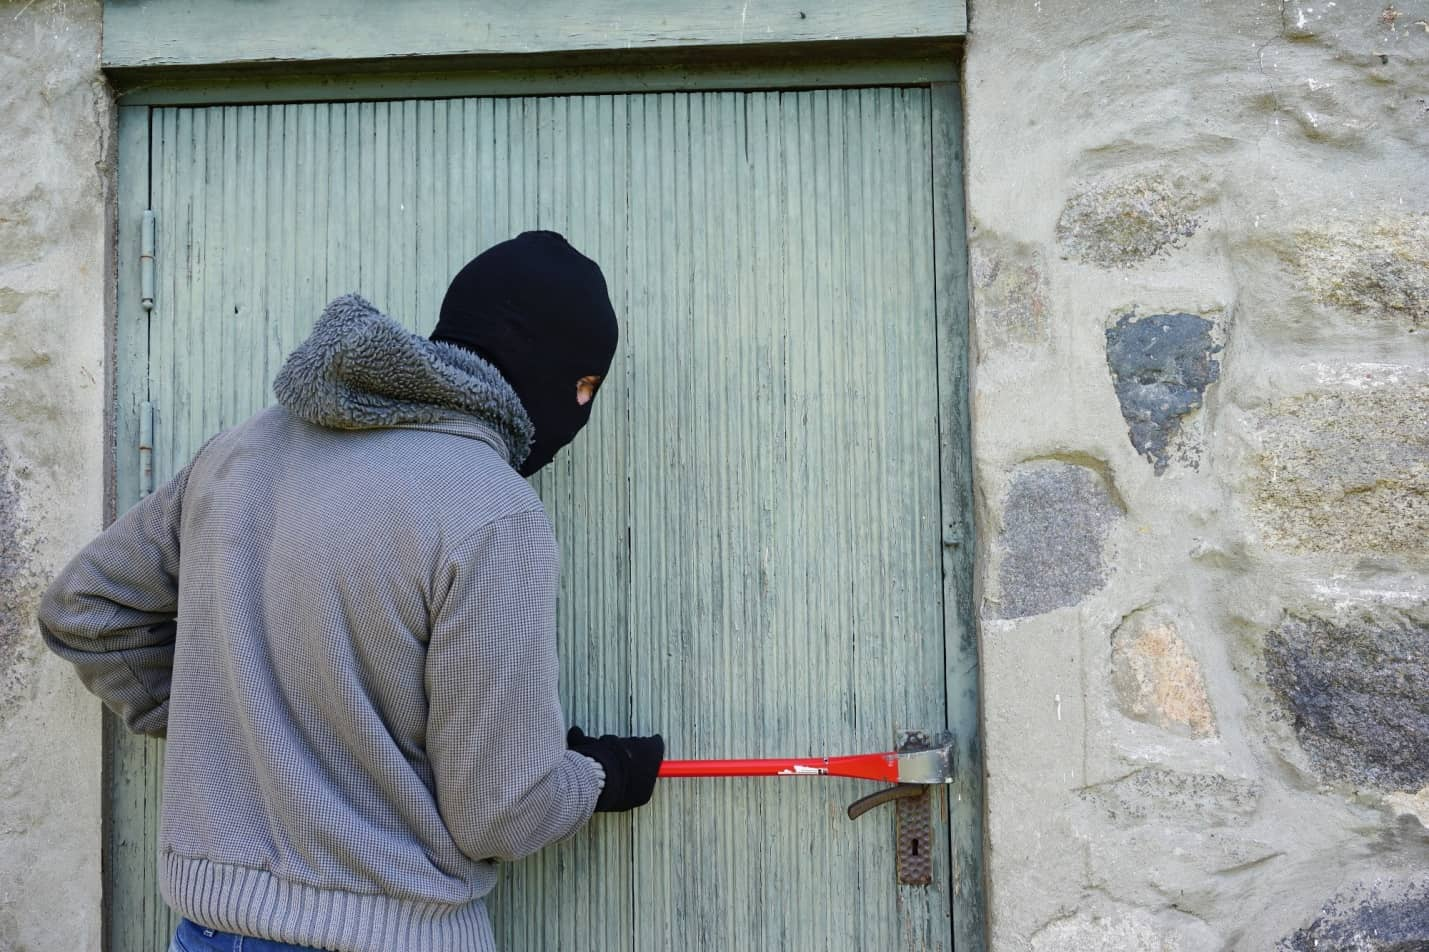 A Complete Guide on How to Burglar Proof Your Home. The breaking into a property